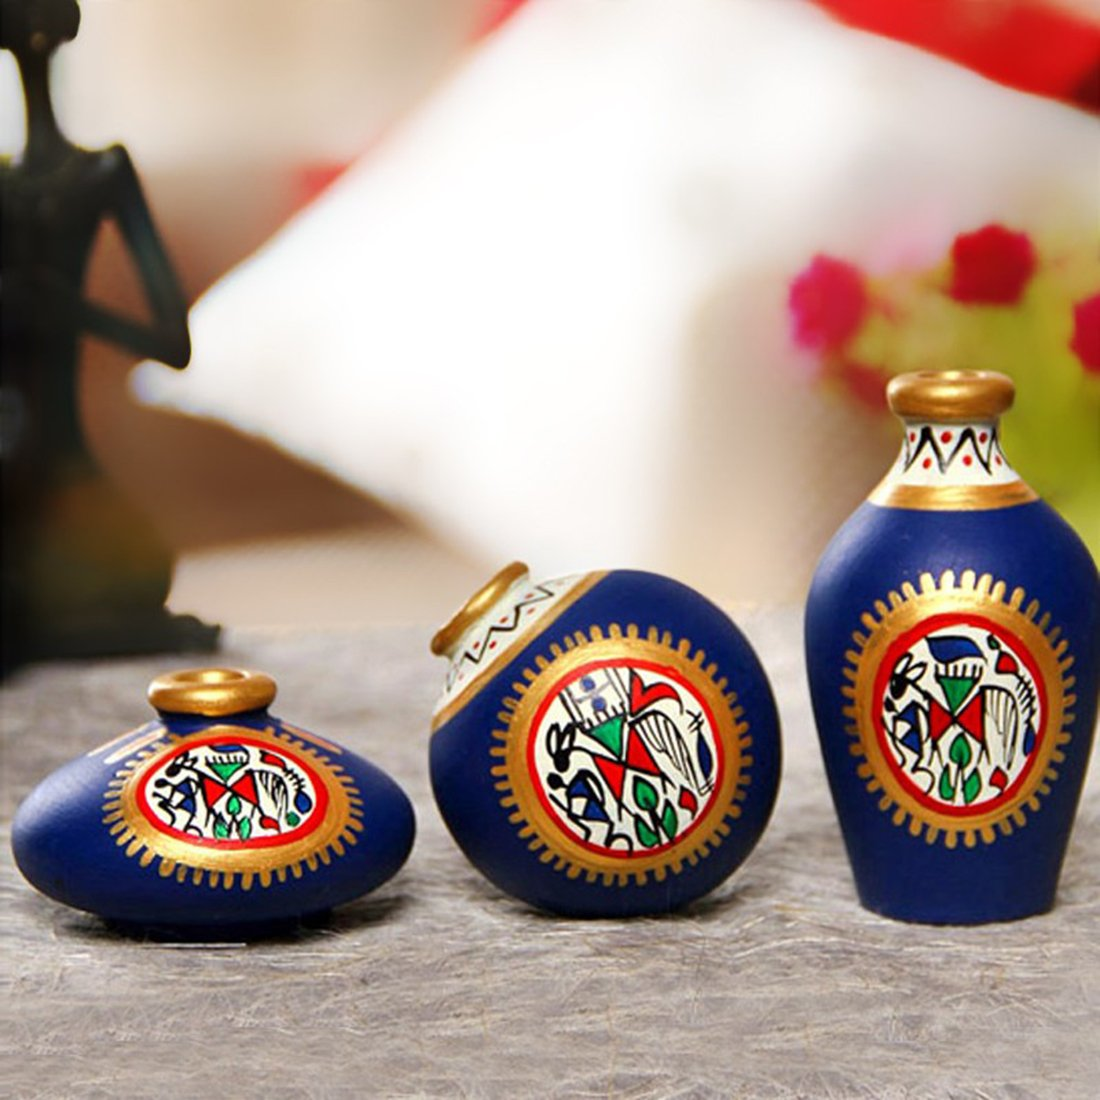 Terracotta Home Products Buy Terracotta Home Products Online At